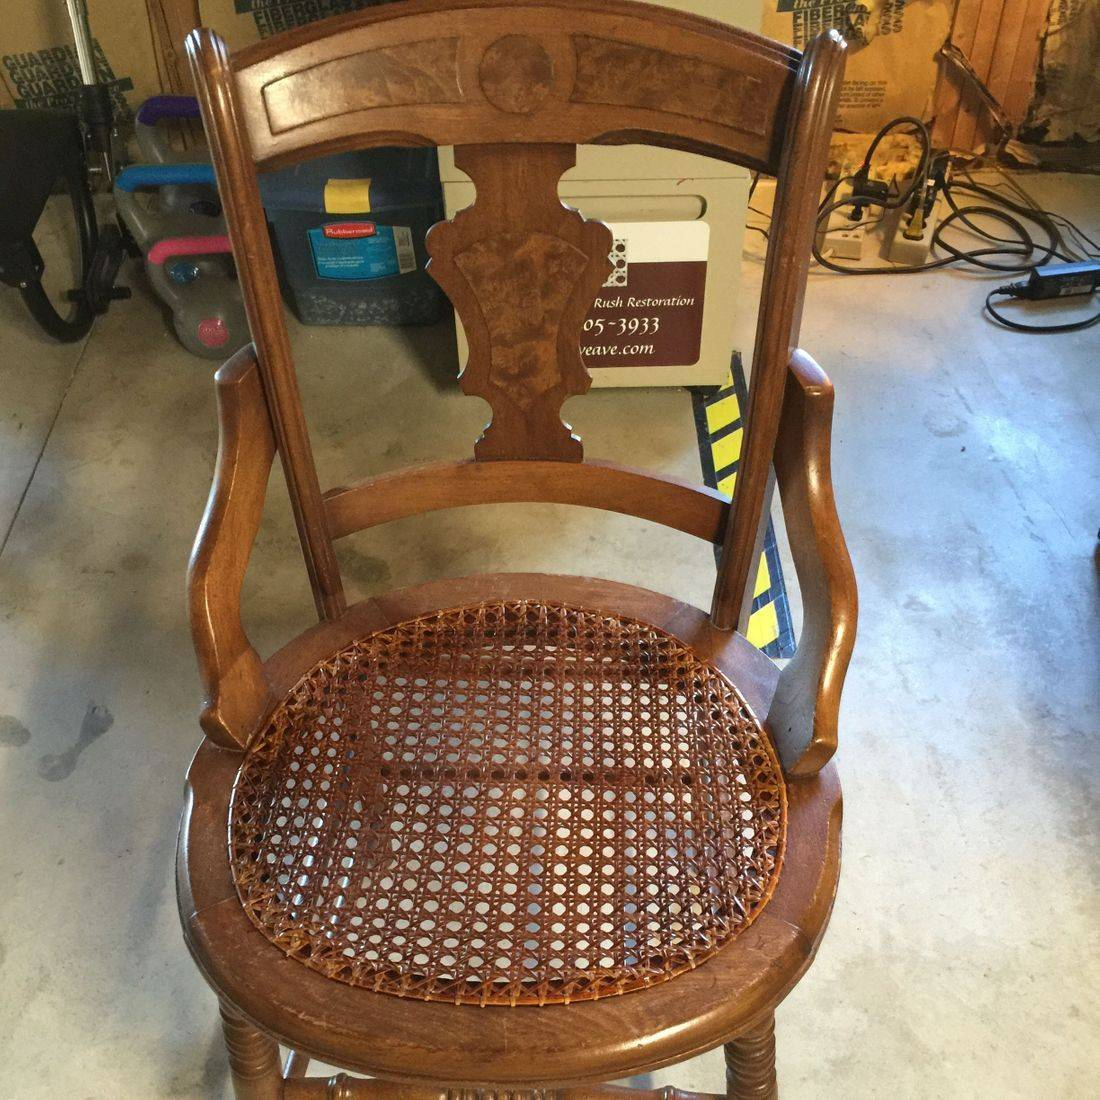 Antique Hip Rest Chair done by Hank's Cane & Rush Restoration